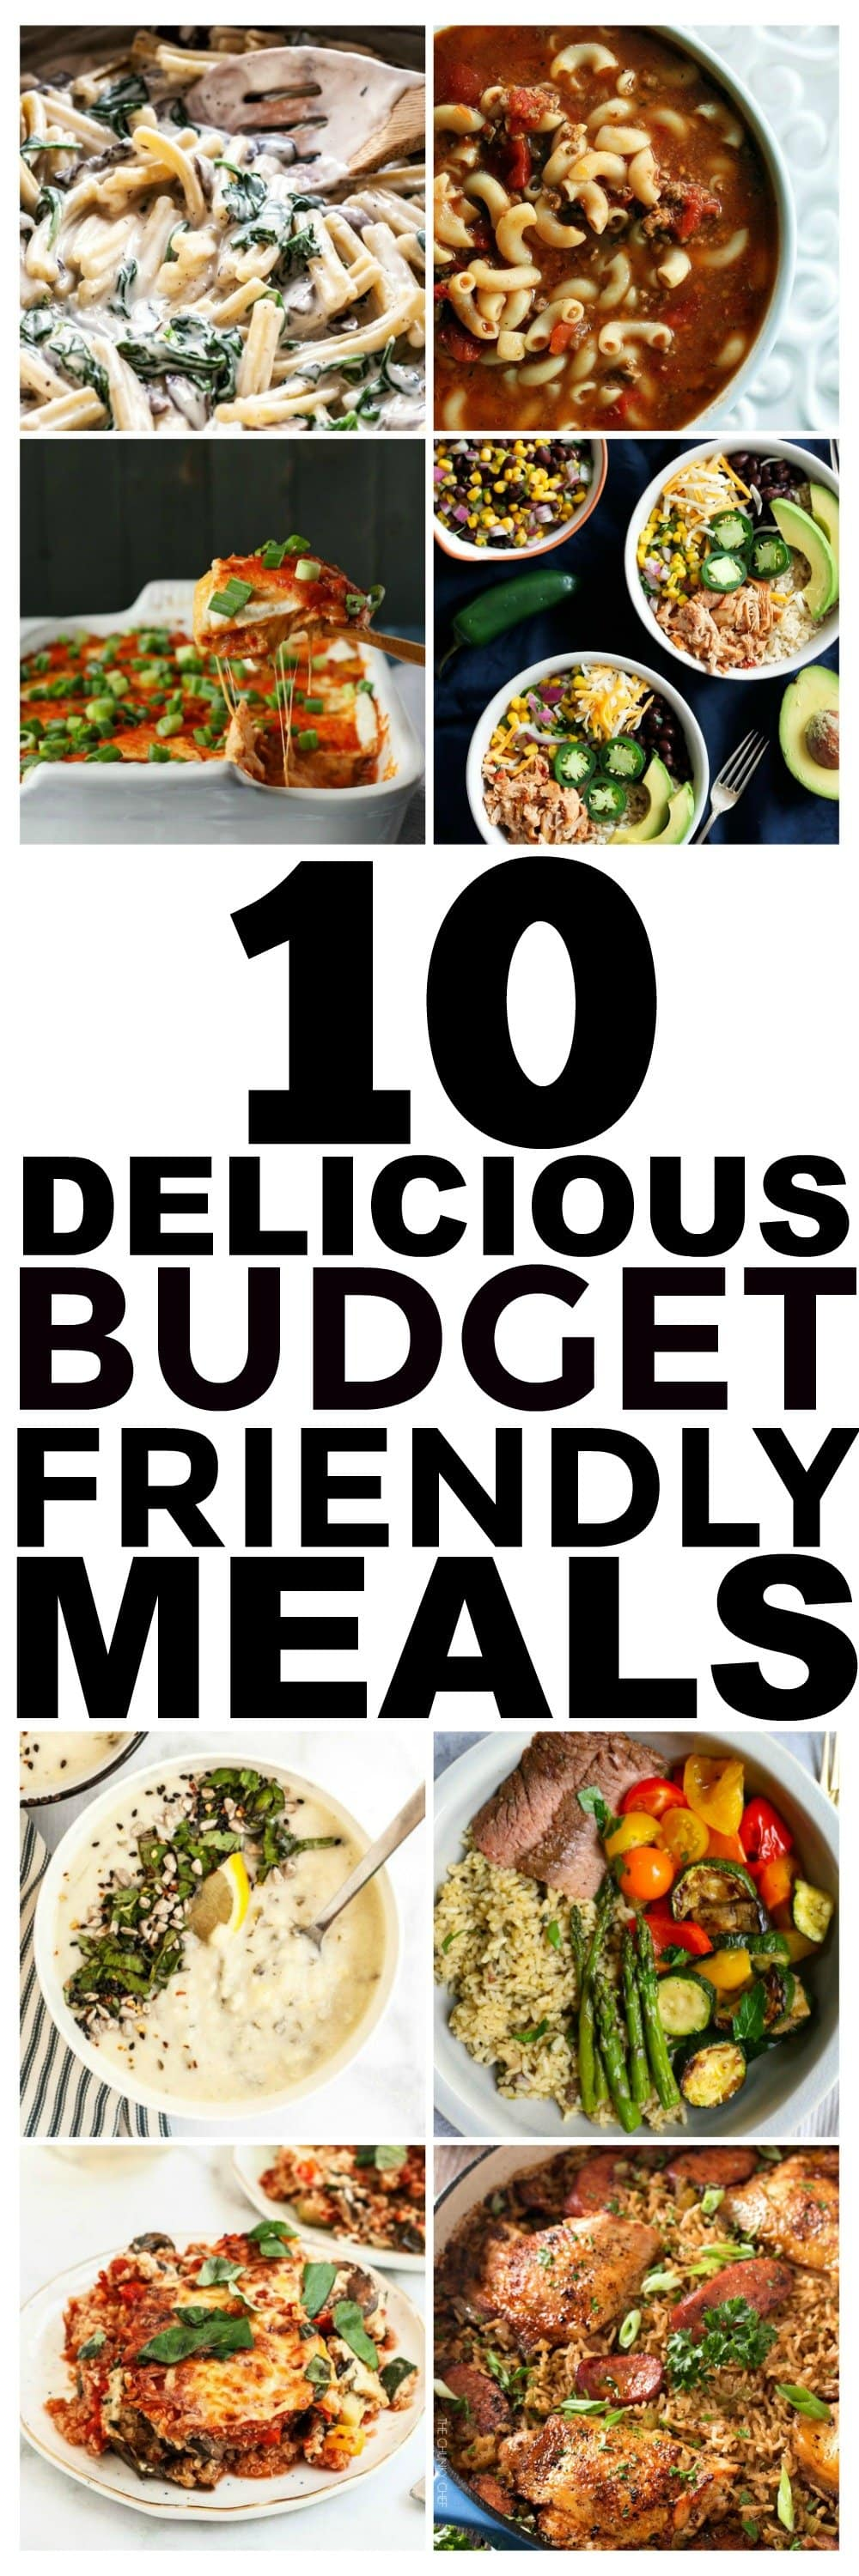 Looking for budget recipes? Here are 10 cheap easy meals that you should start making. Yes, these are cheap meals that are delicious! These healthy meal and dinner ideas for families or even just for two or one are easy and delicious, and some are even vegetarian and vegan!